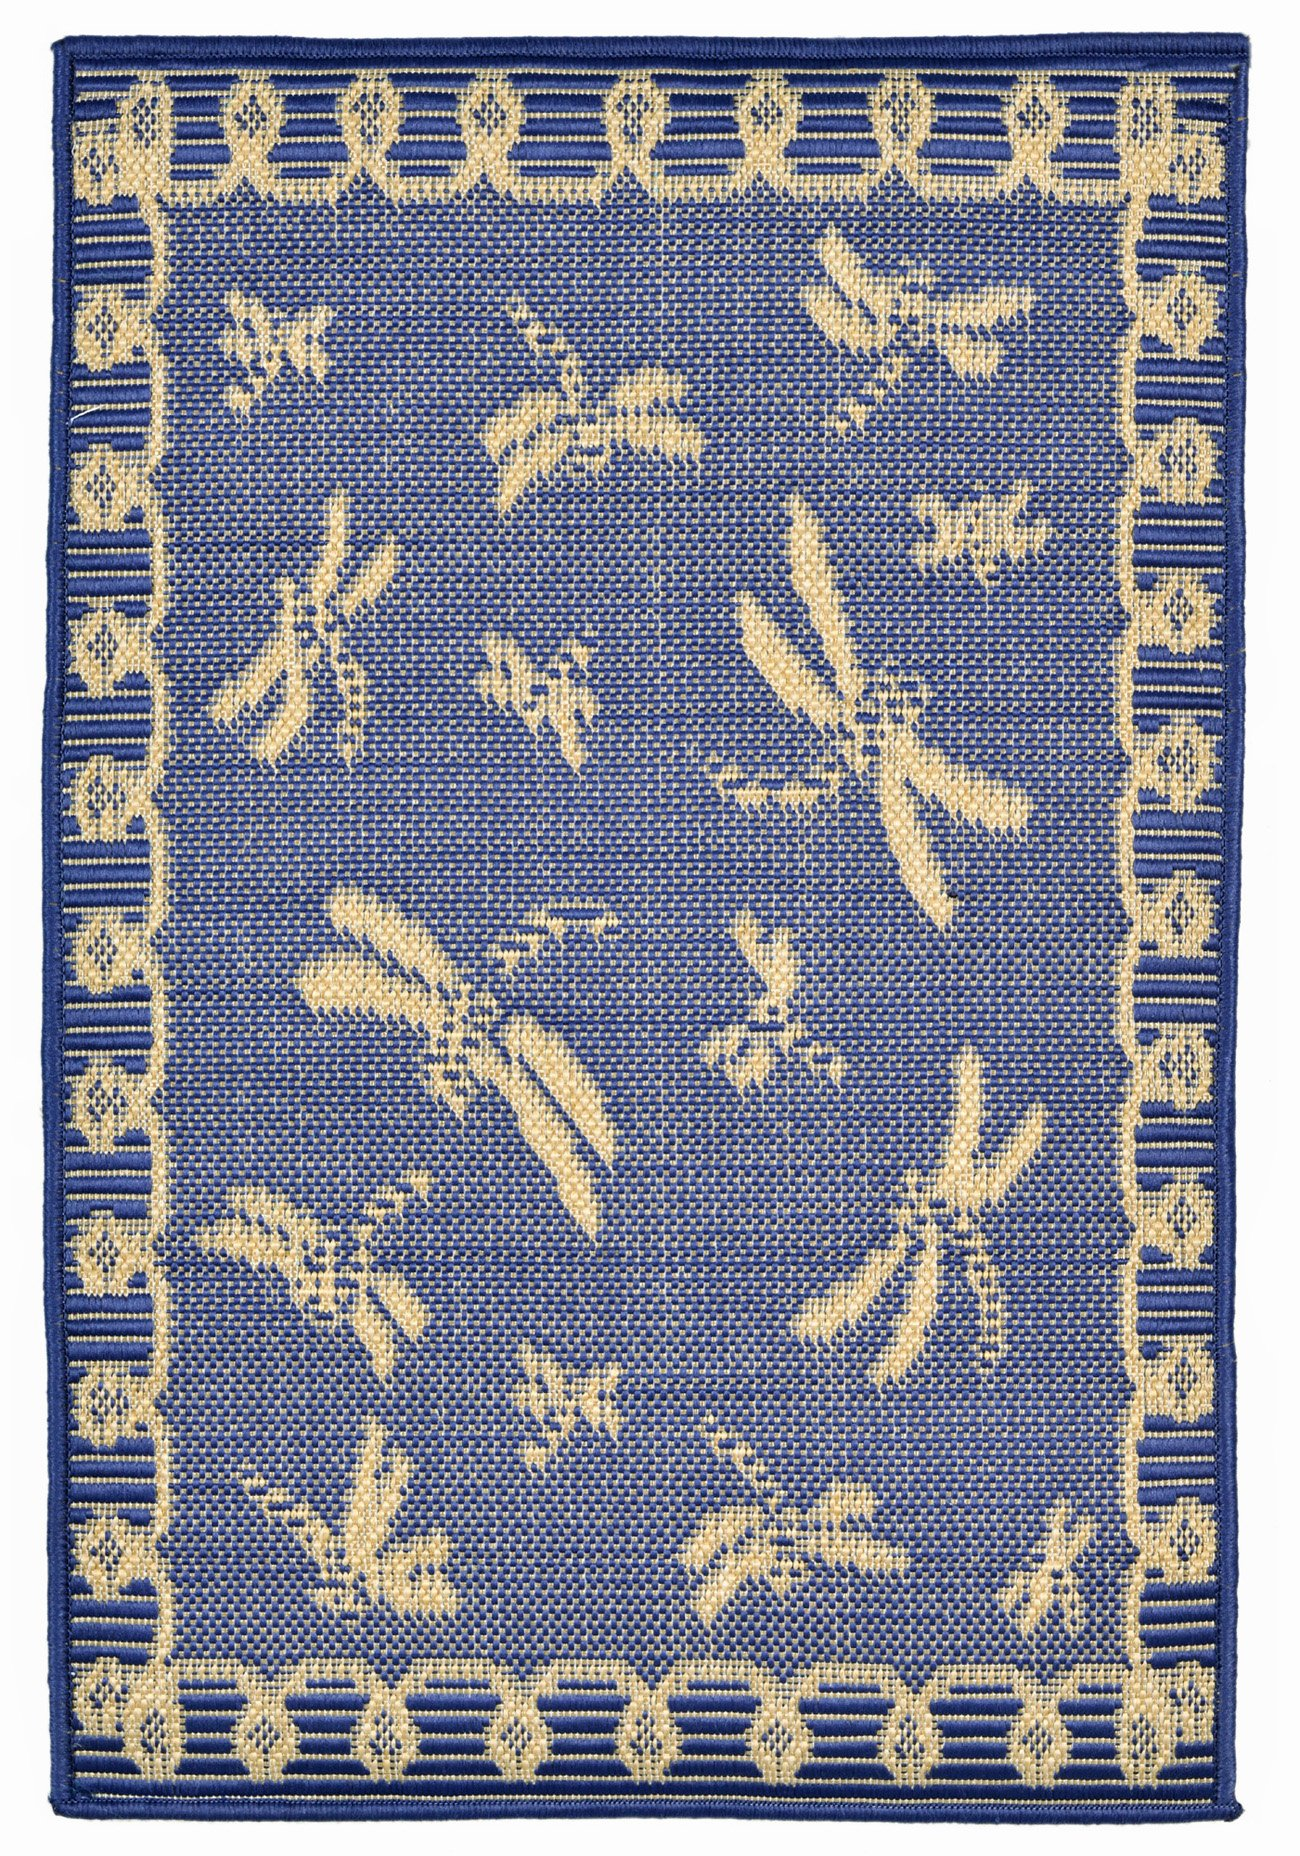 AREA RUGS - ''DRAGONFLY DANCE'' RUG - MARINE BLUE - 23'' x 35'' - INDOOR OUTDOOR DRAGONFLY RUG